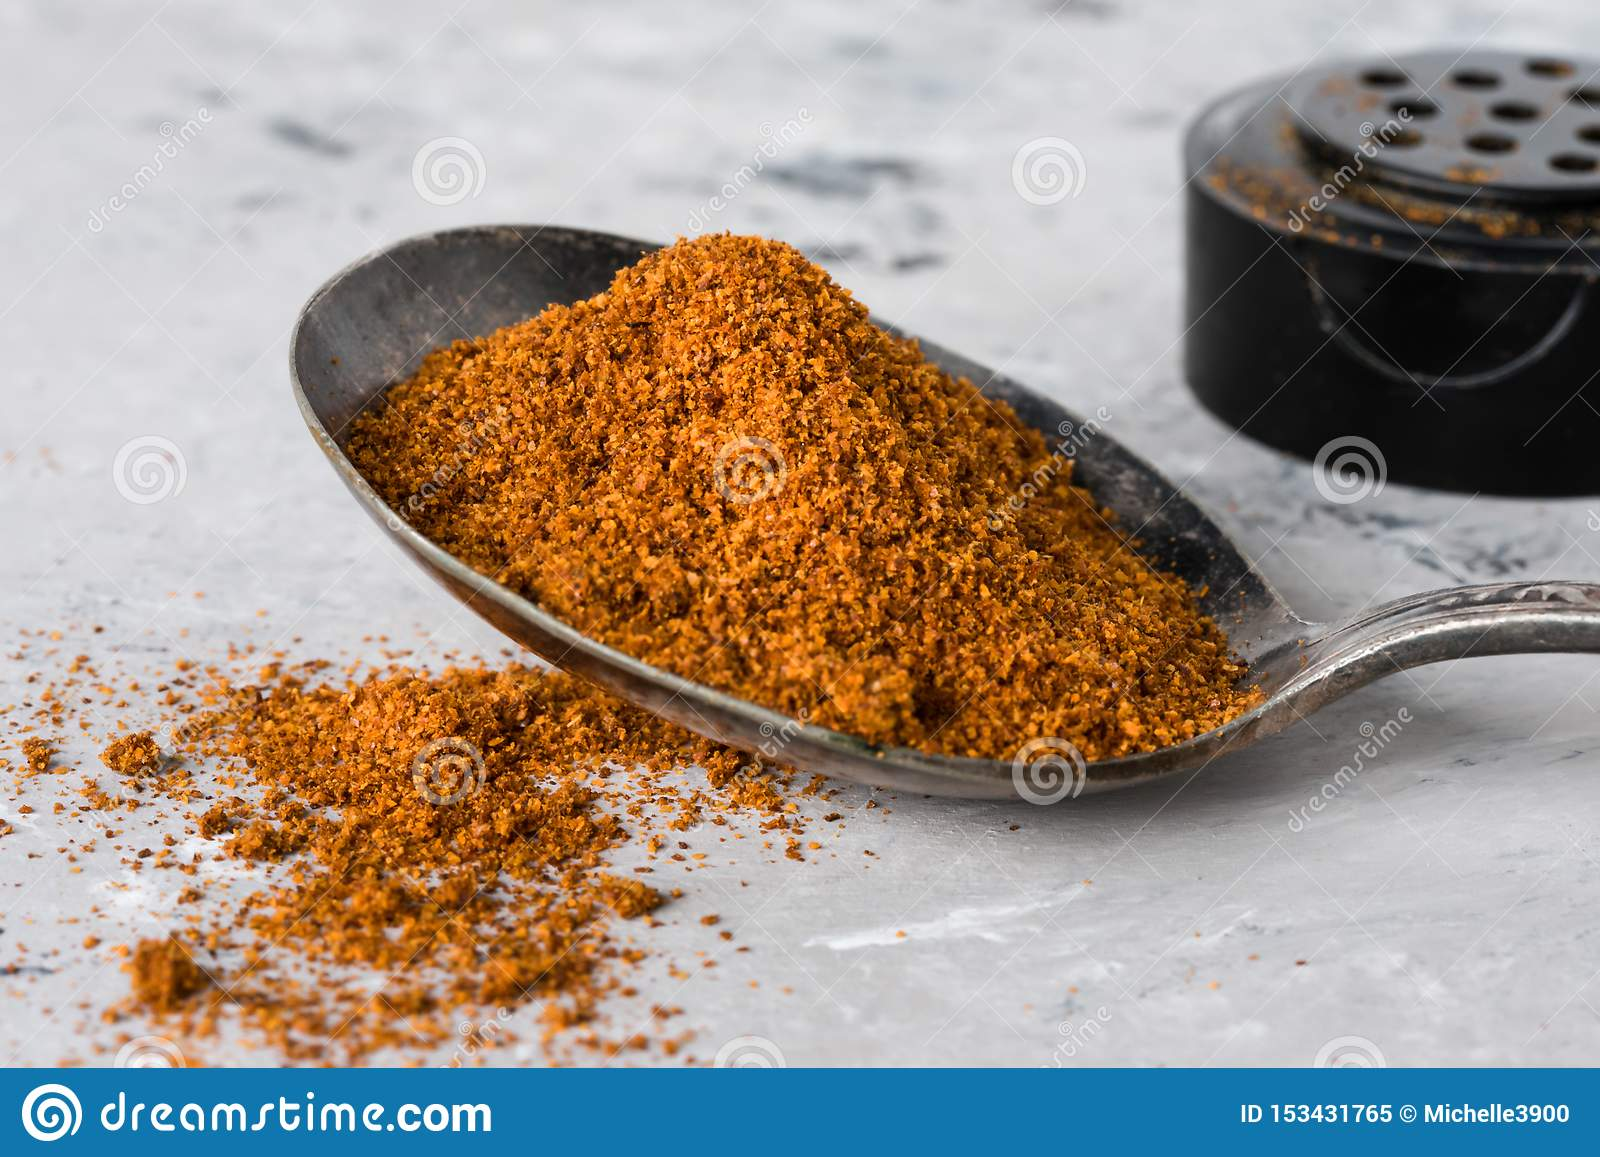 Ground Cayenne Pepper Spilled from a Vintage Spoon